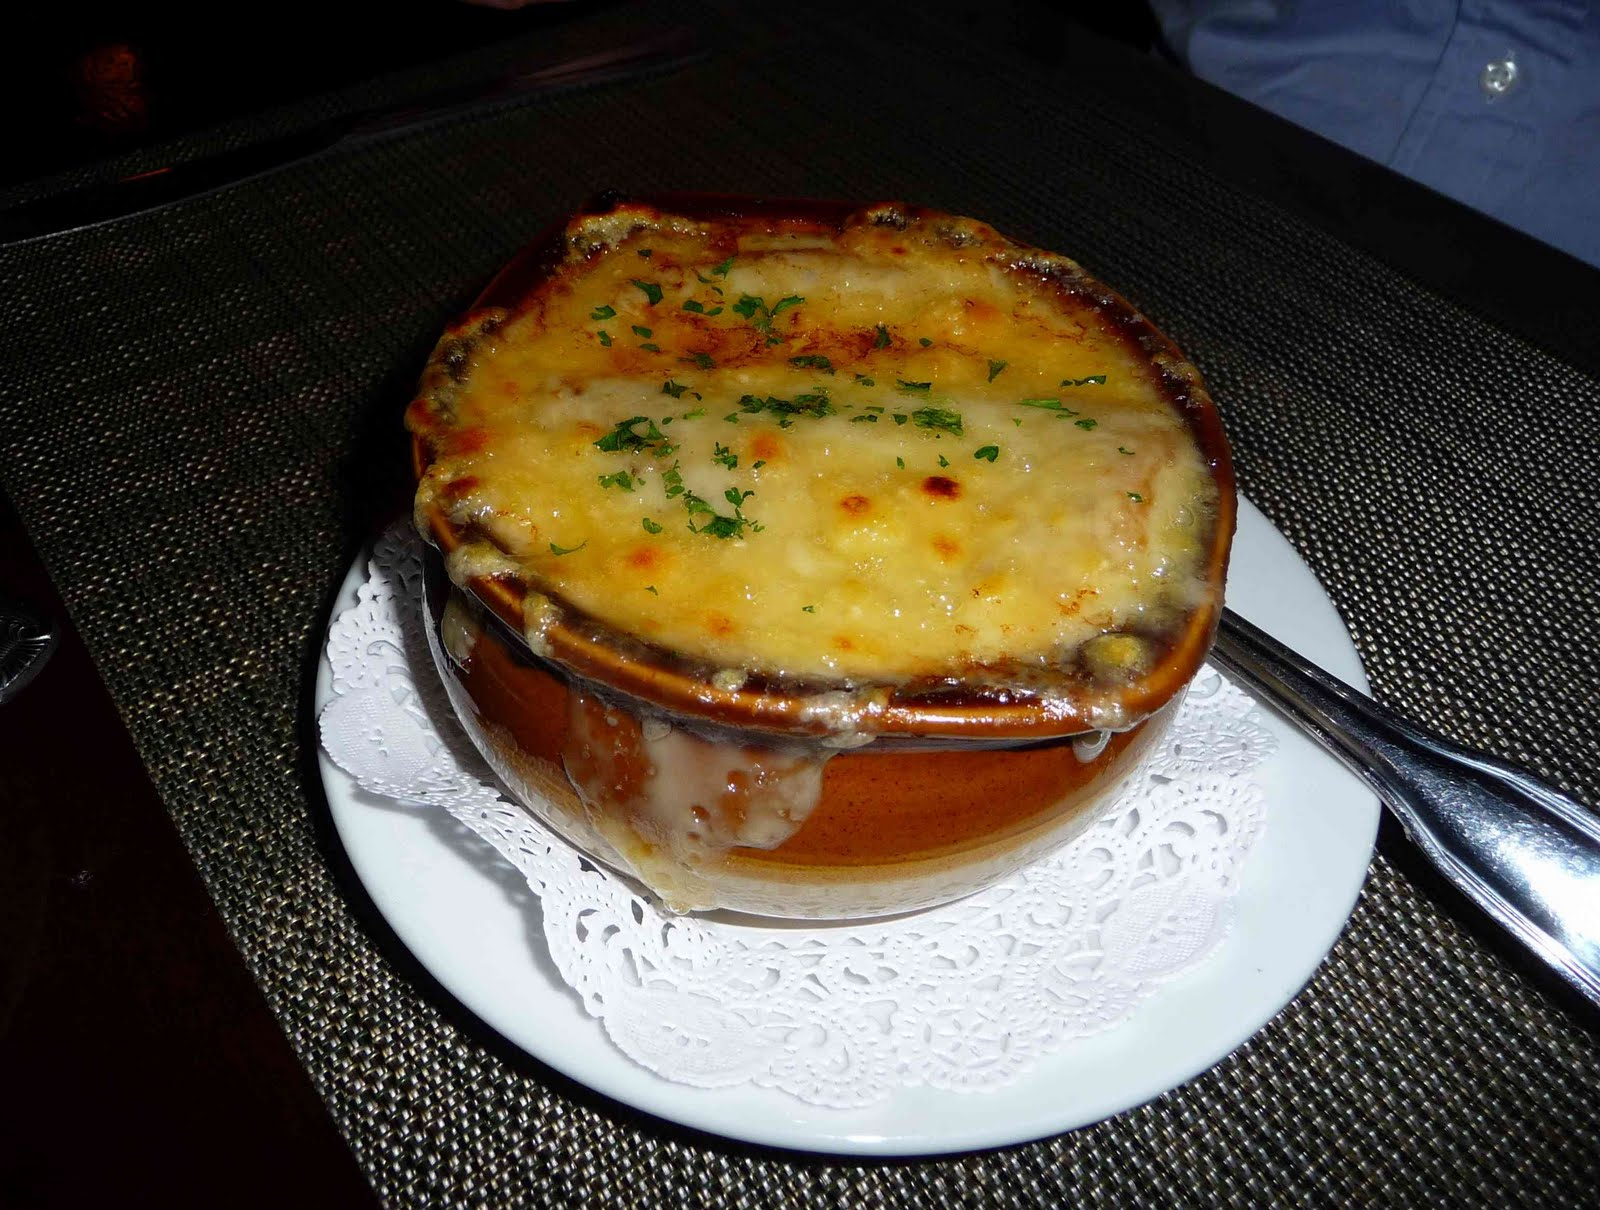 How Do You Eat French Onion Soup? |